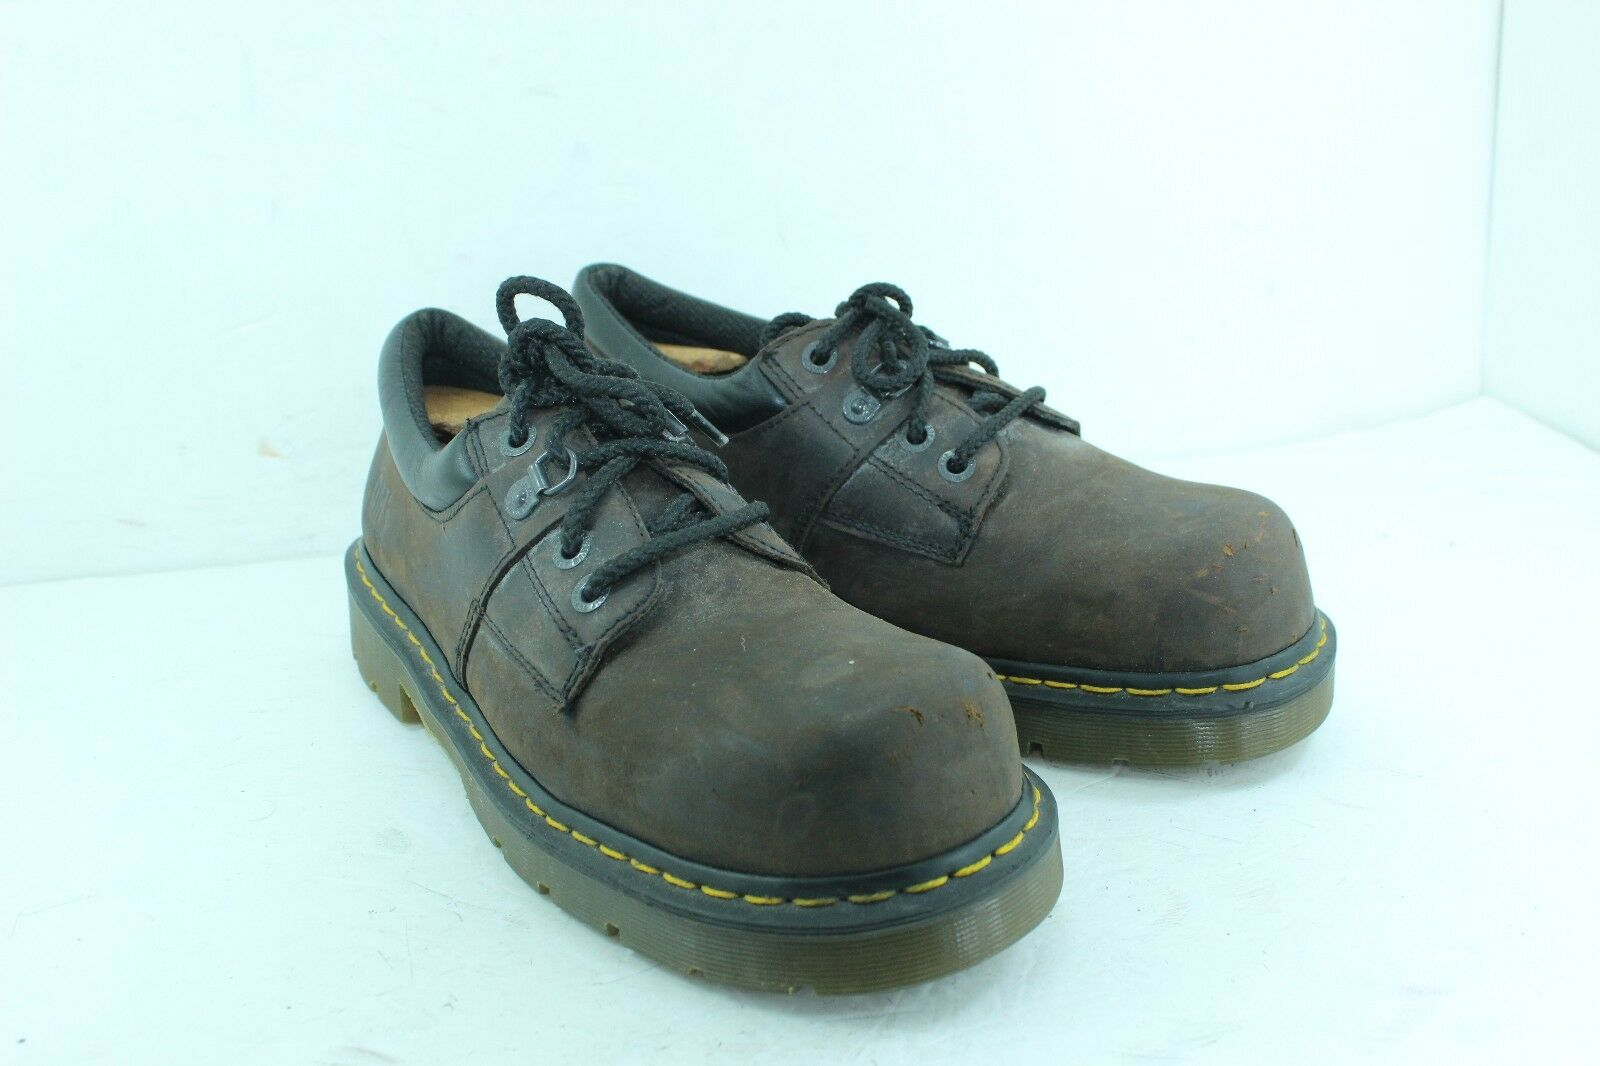 DR MARTENS DM'S INDUSTRIAL SIZE 11 BROWNS STEEL TOE IN GREAT CONDITION